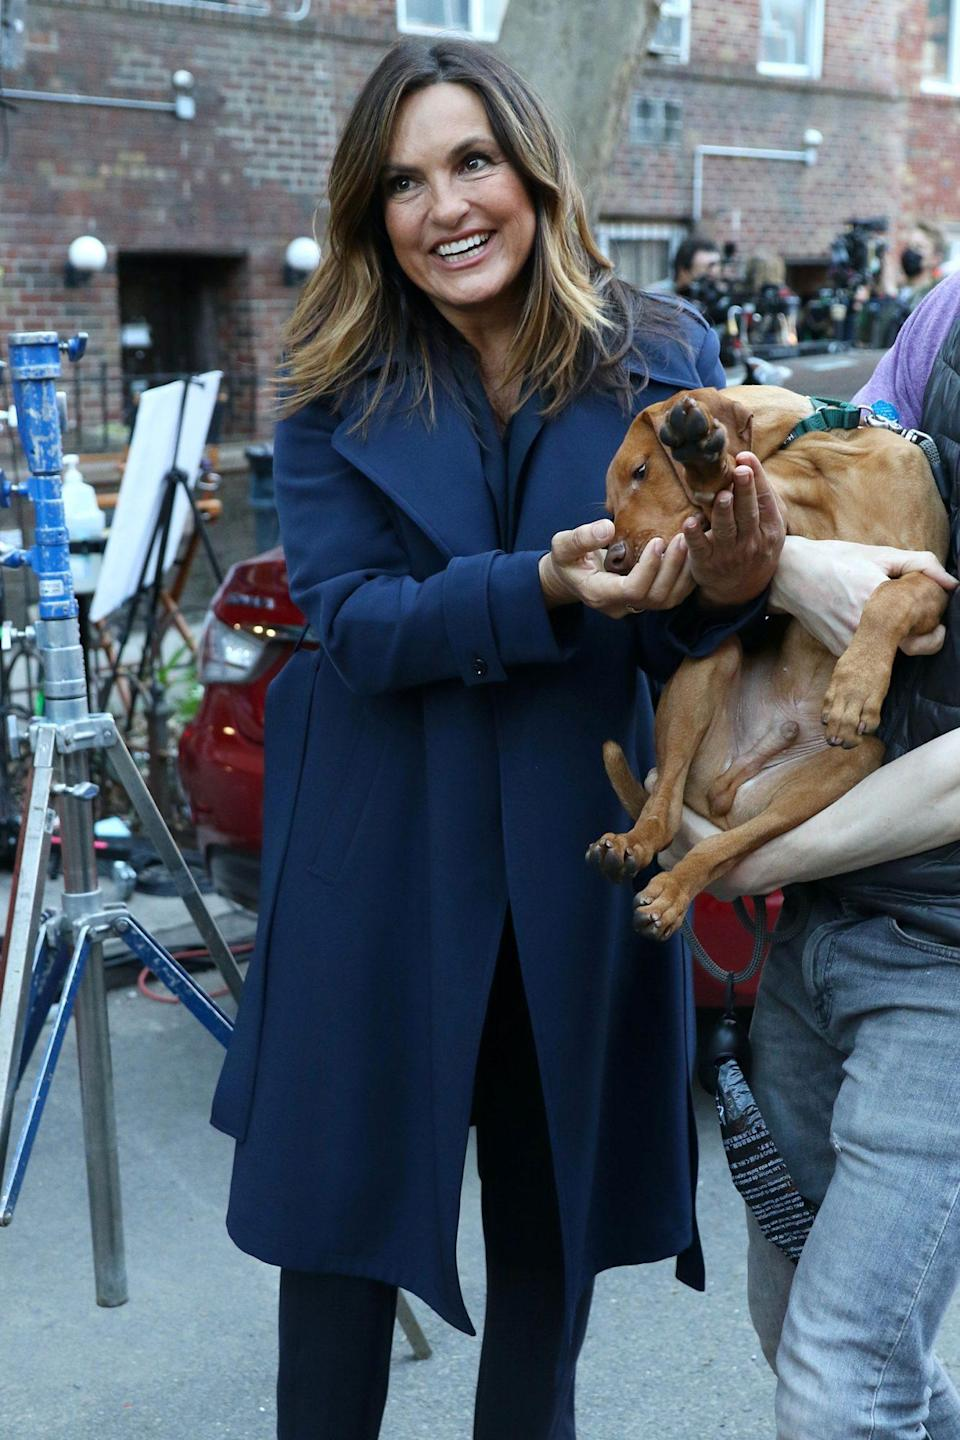 <p>Mariska Hargitay pets a canine costar on Wednesday on the New York City set of <em>Law & Order: SVU.</em></p>